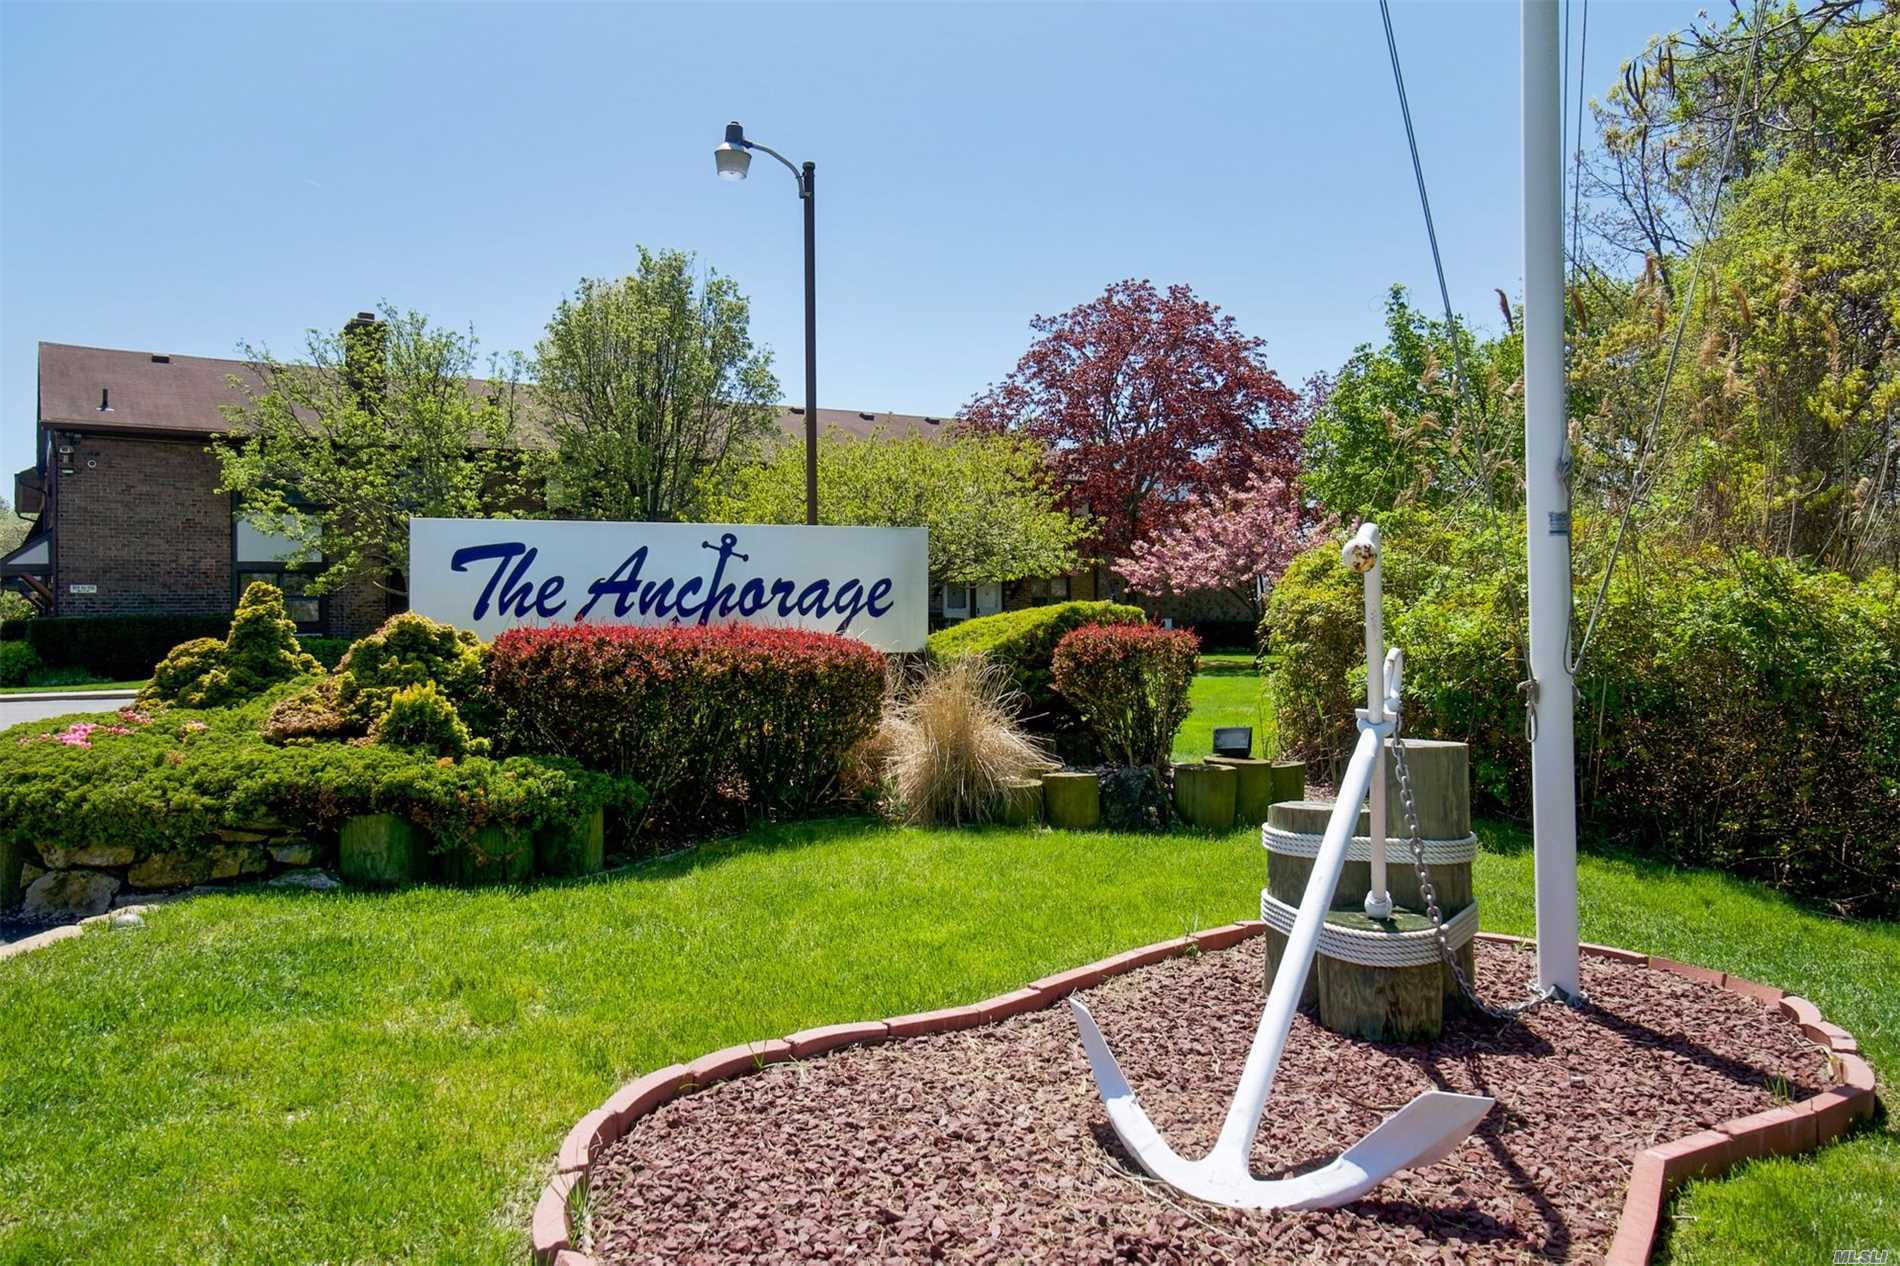 This Anchorage Waterfront Gated Community is a Boaters Delight! Amenities Include Waterviews, Dock Space for Your Boat, InGround Pool Overlooking Great South Bay, Clubhouse, Tennis Court & Marina. This Unique 1 BR Unit Has Many Updates & Custom Built Ins Closets Throughout w/Full Attic, Eat In Kitchen, Din Rm, Full Bath w/Washer/Dryer, Office, Liv Rm w/Sliders to Balcony & Views of Canal. Common Charges Include Gas For Cooking & Heating, Water, Snow Removal, Landscaping and Mstr Flood Insurance